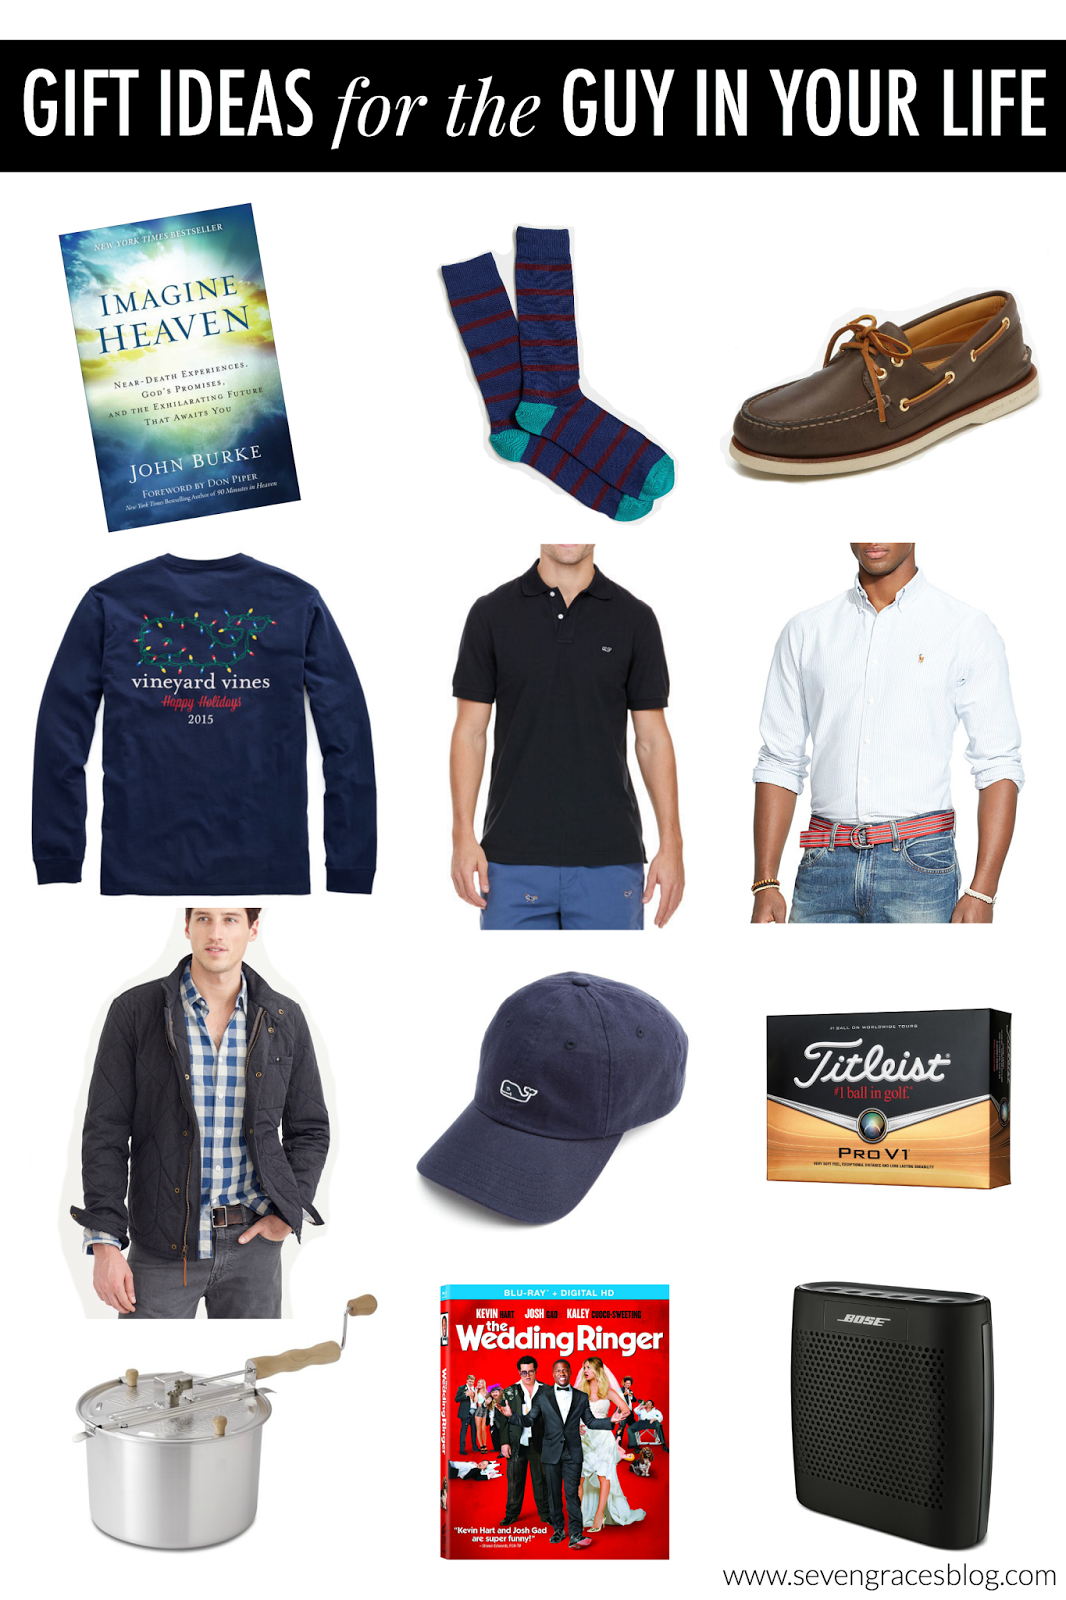 Christmas Gift Ideas for the Guy in Your Life | SEVEN GRACES BLOG ...